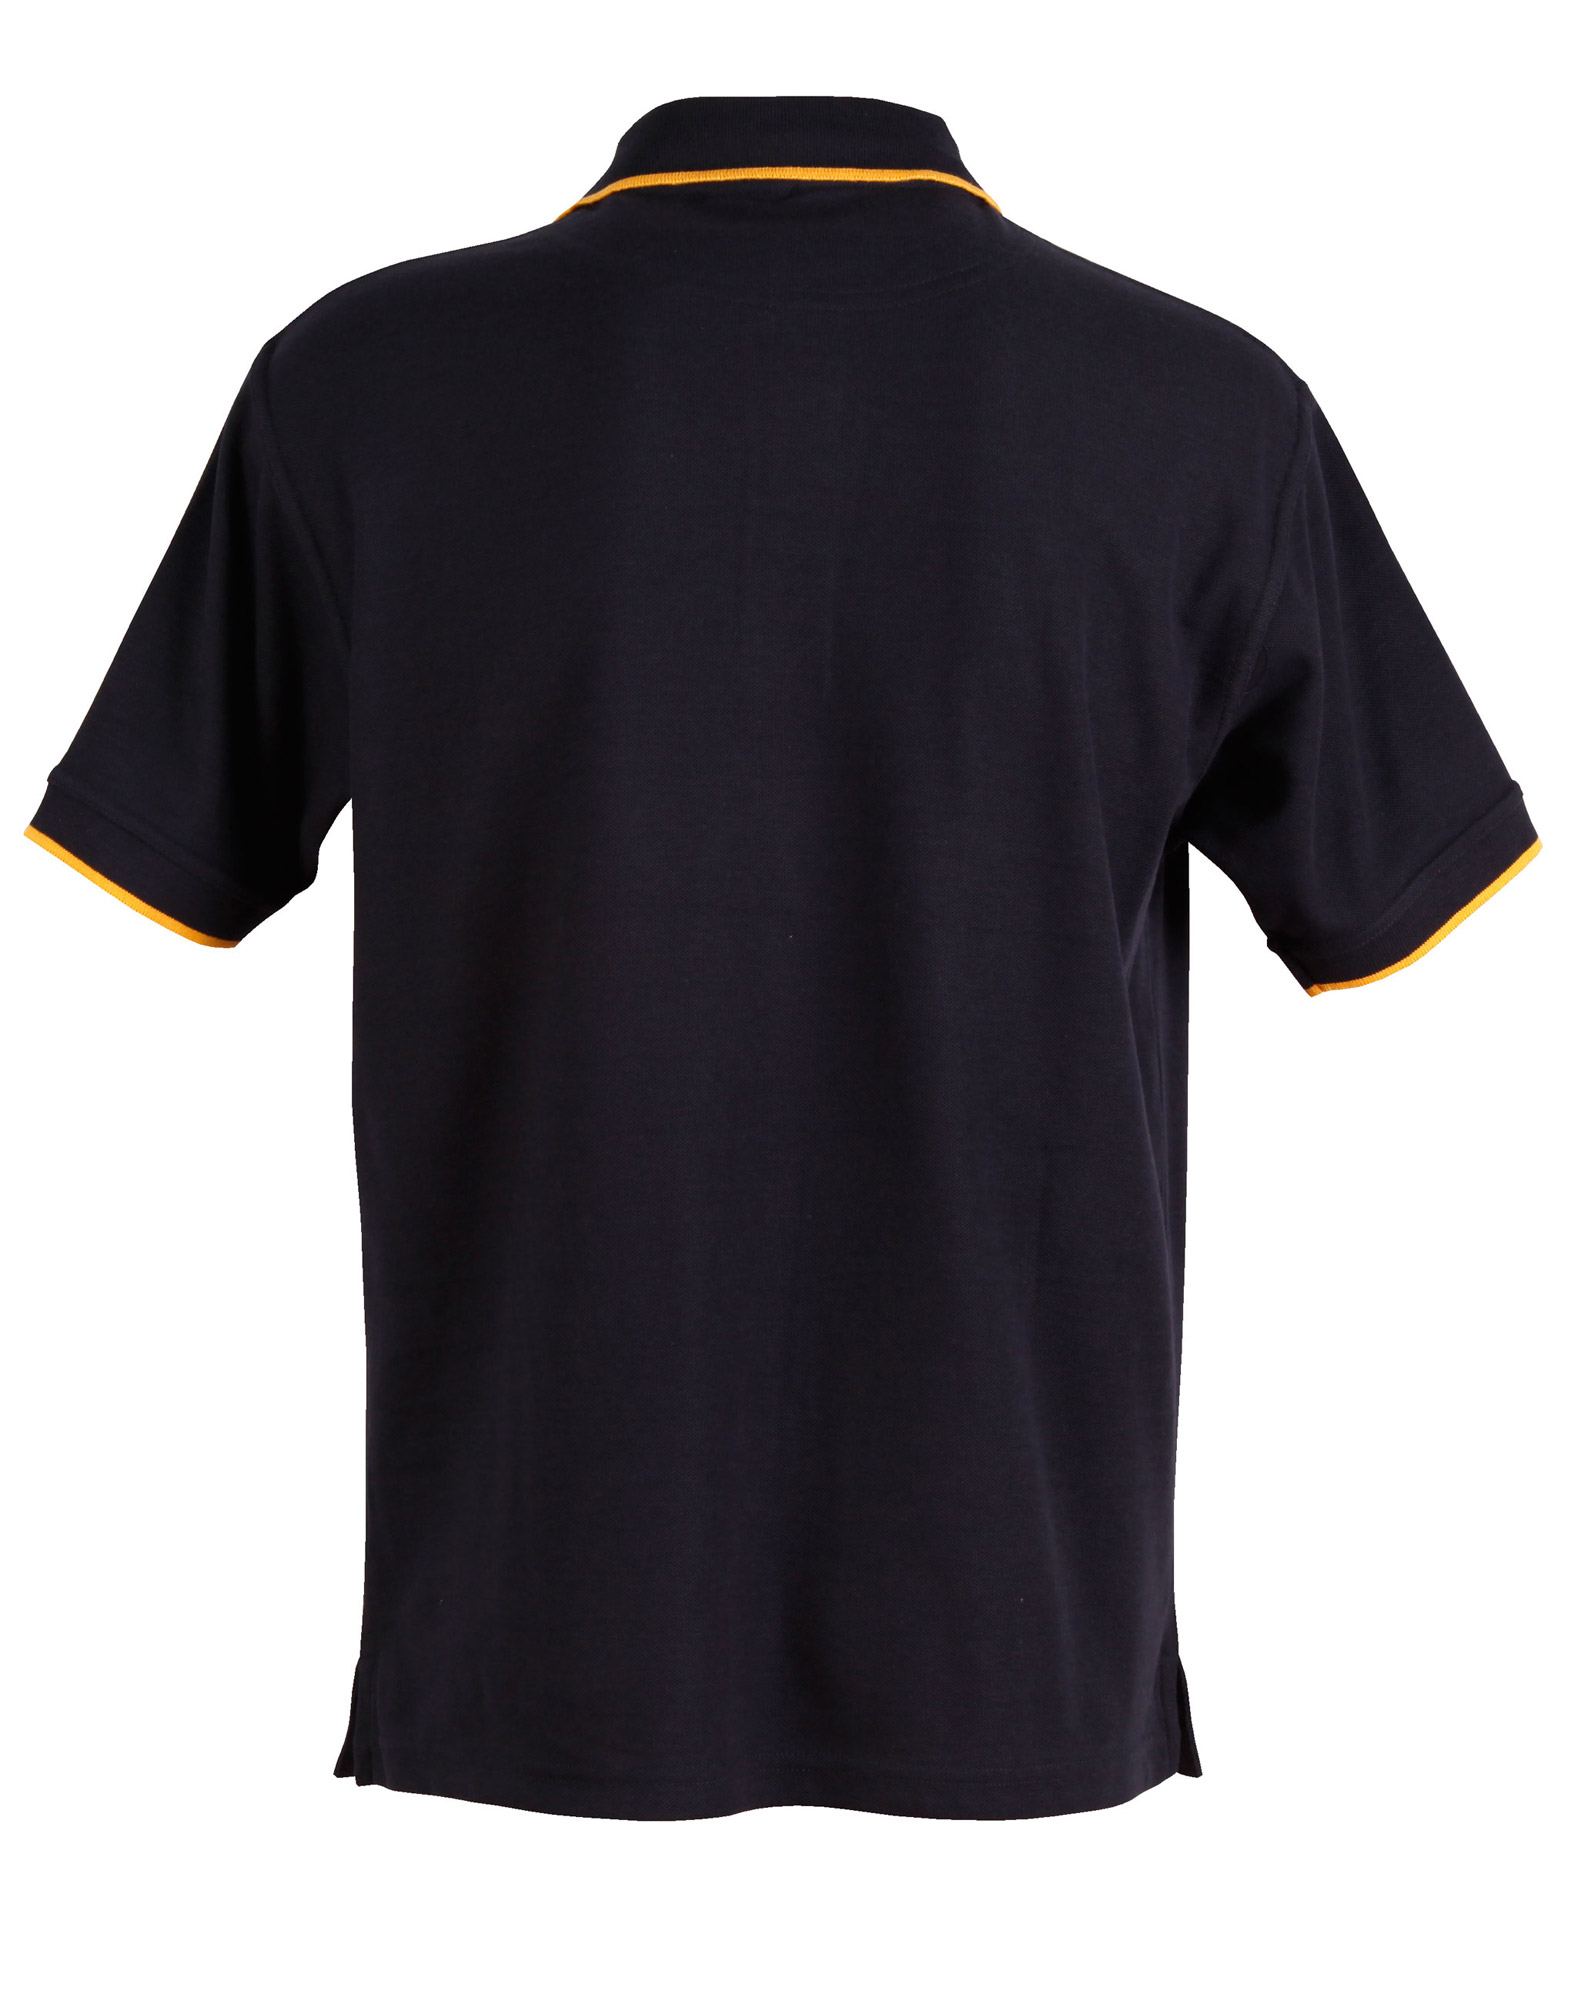 https://s3-ap-southeast-1.amazonaws.com/ws-imgs/POLOSHIRTS/PS08_NavyGold_Back_l.jpg